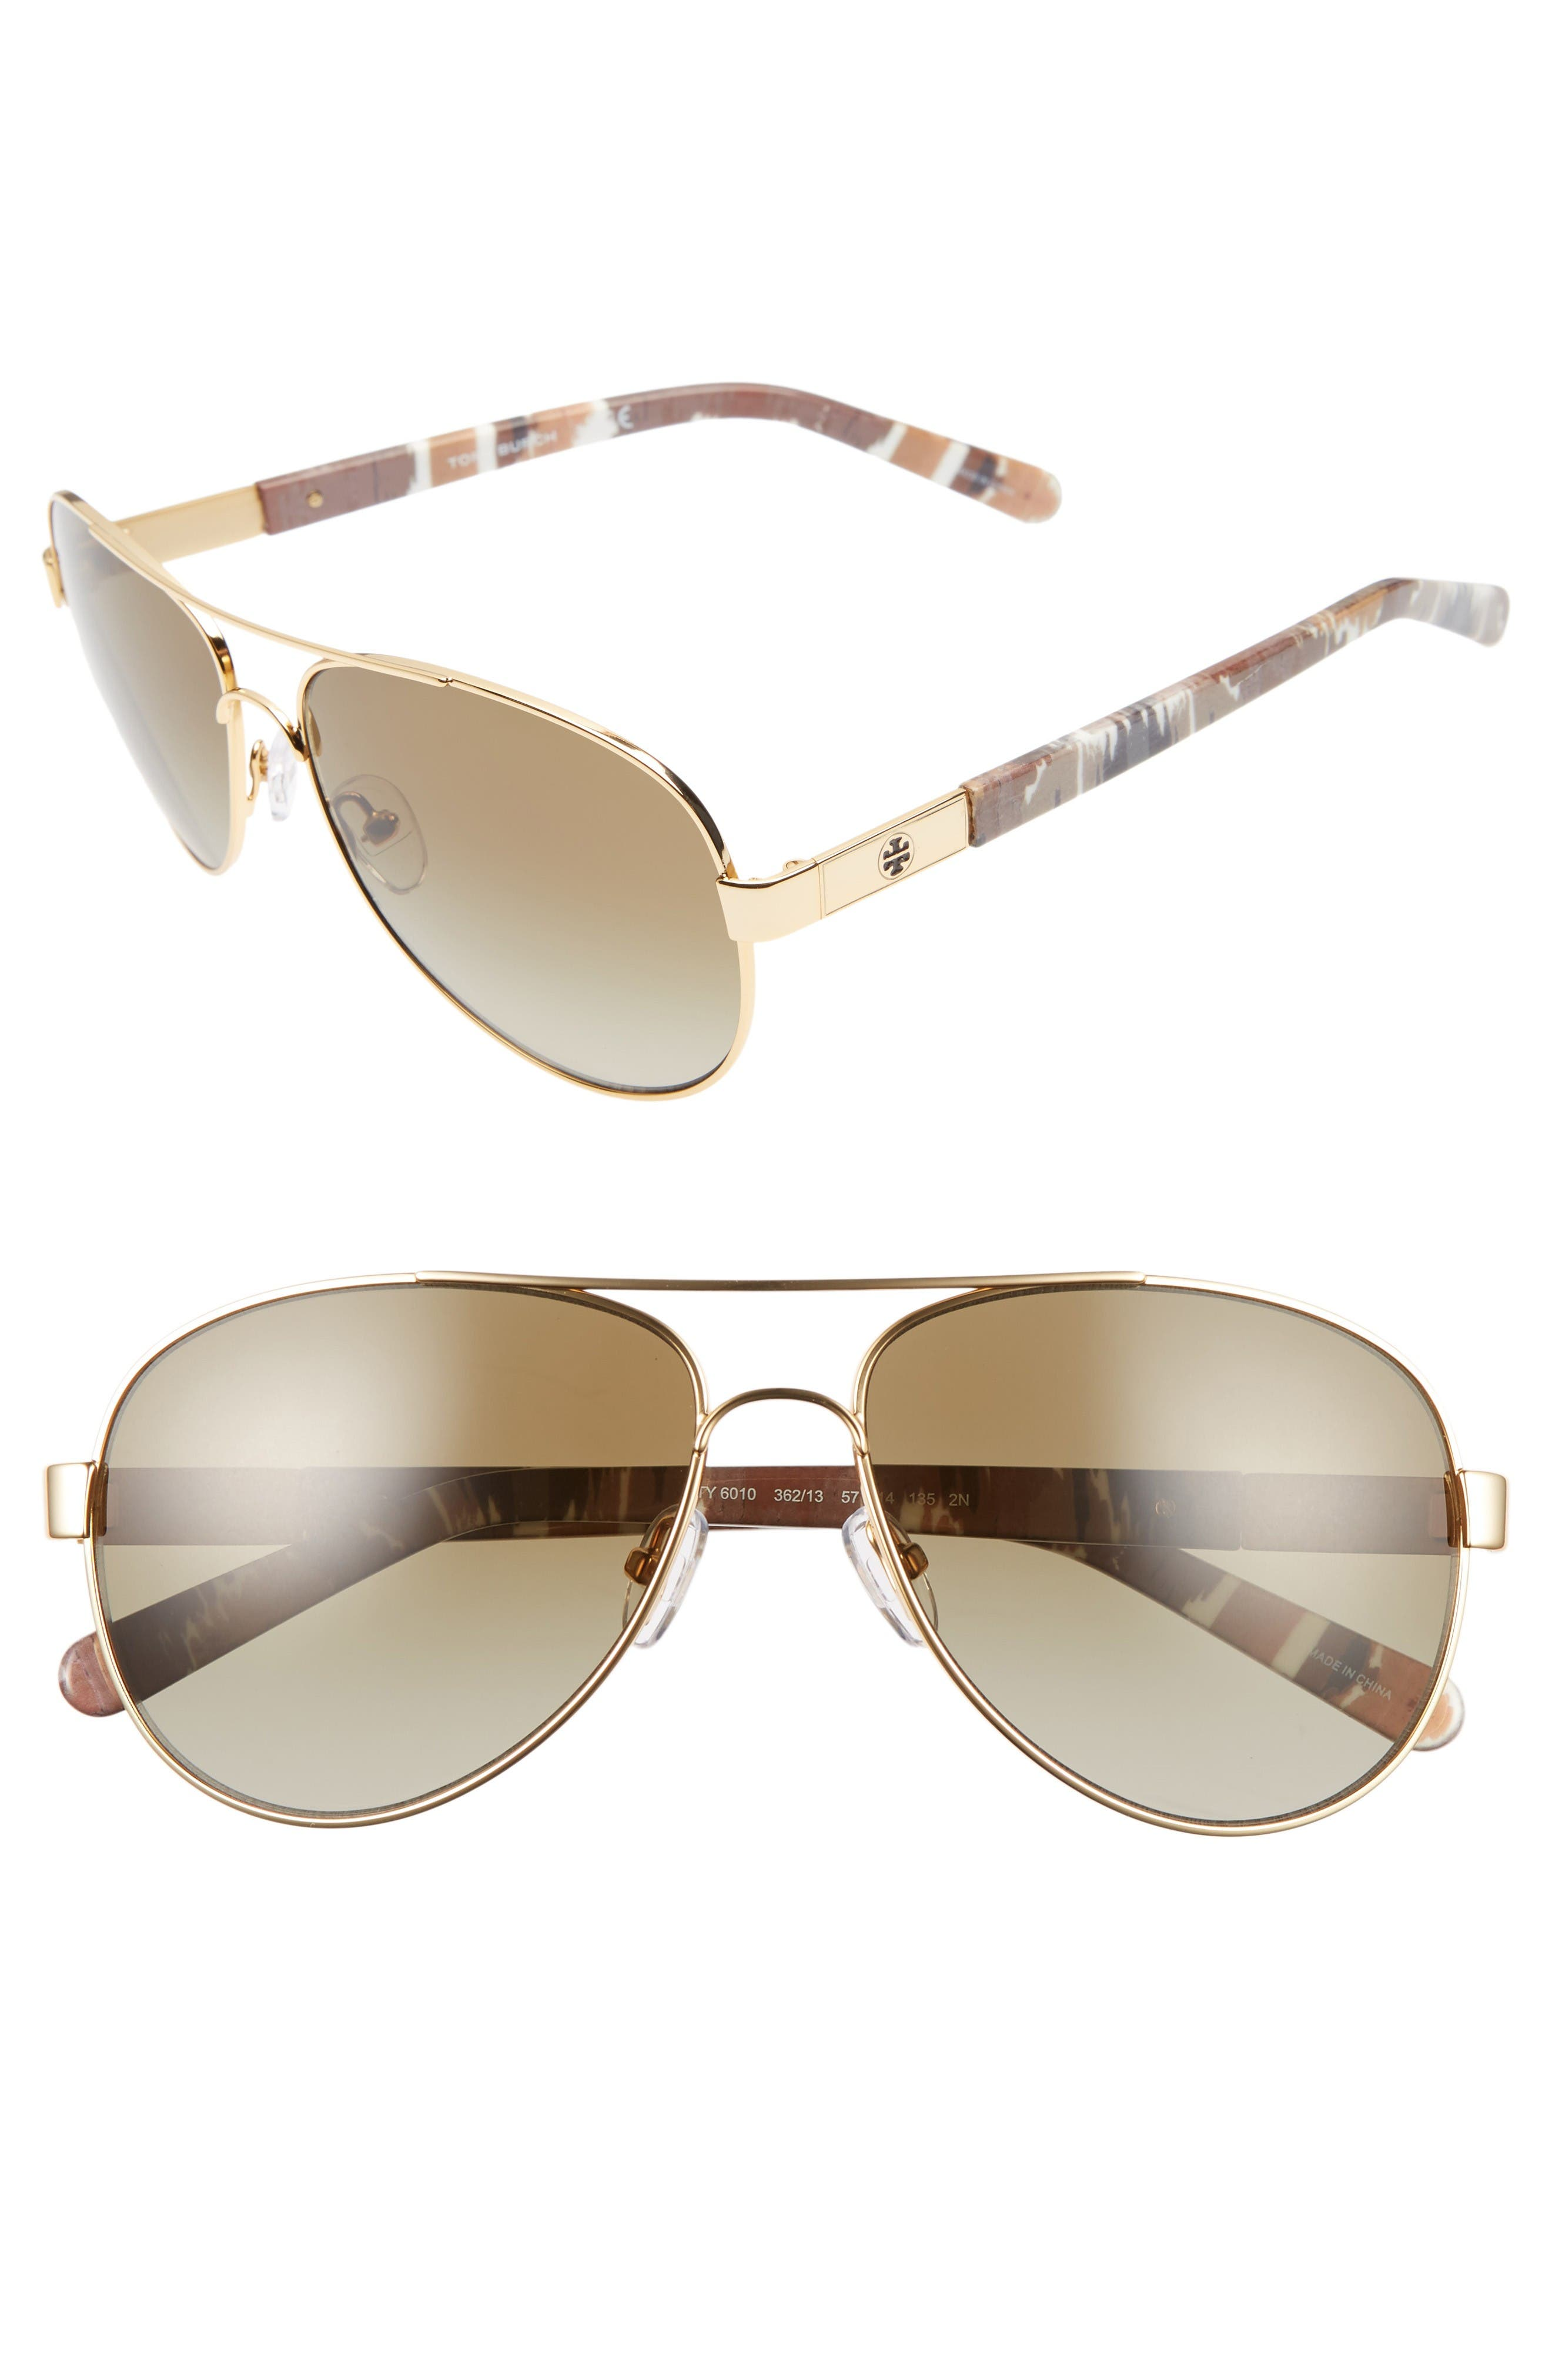 Main Image - Tory Burch 57mm Aviator Sunglasses